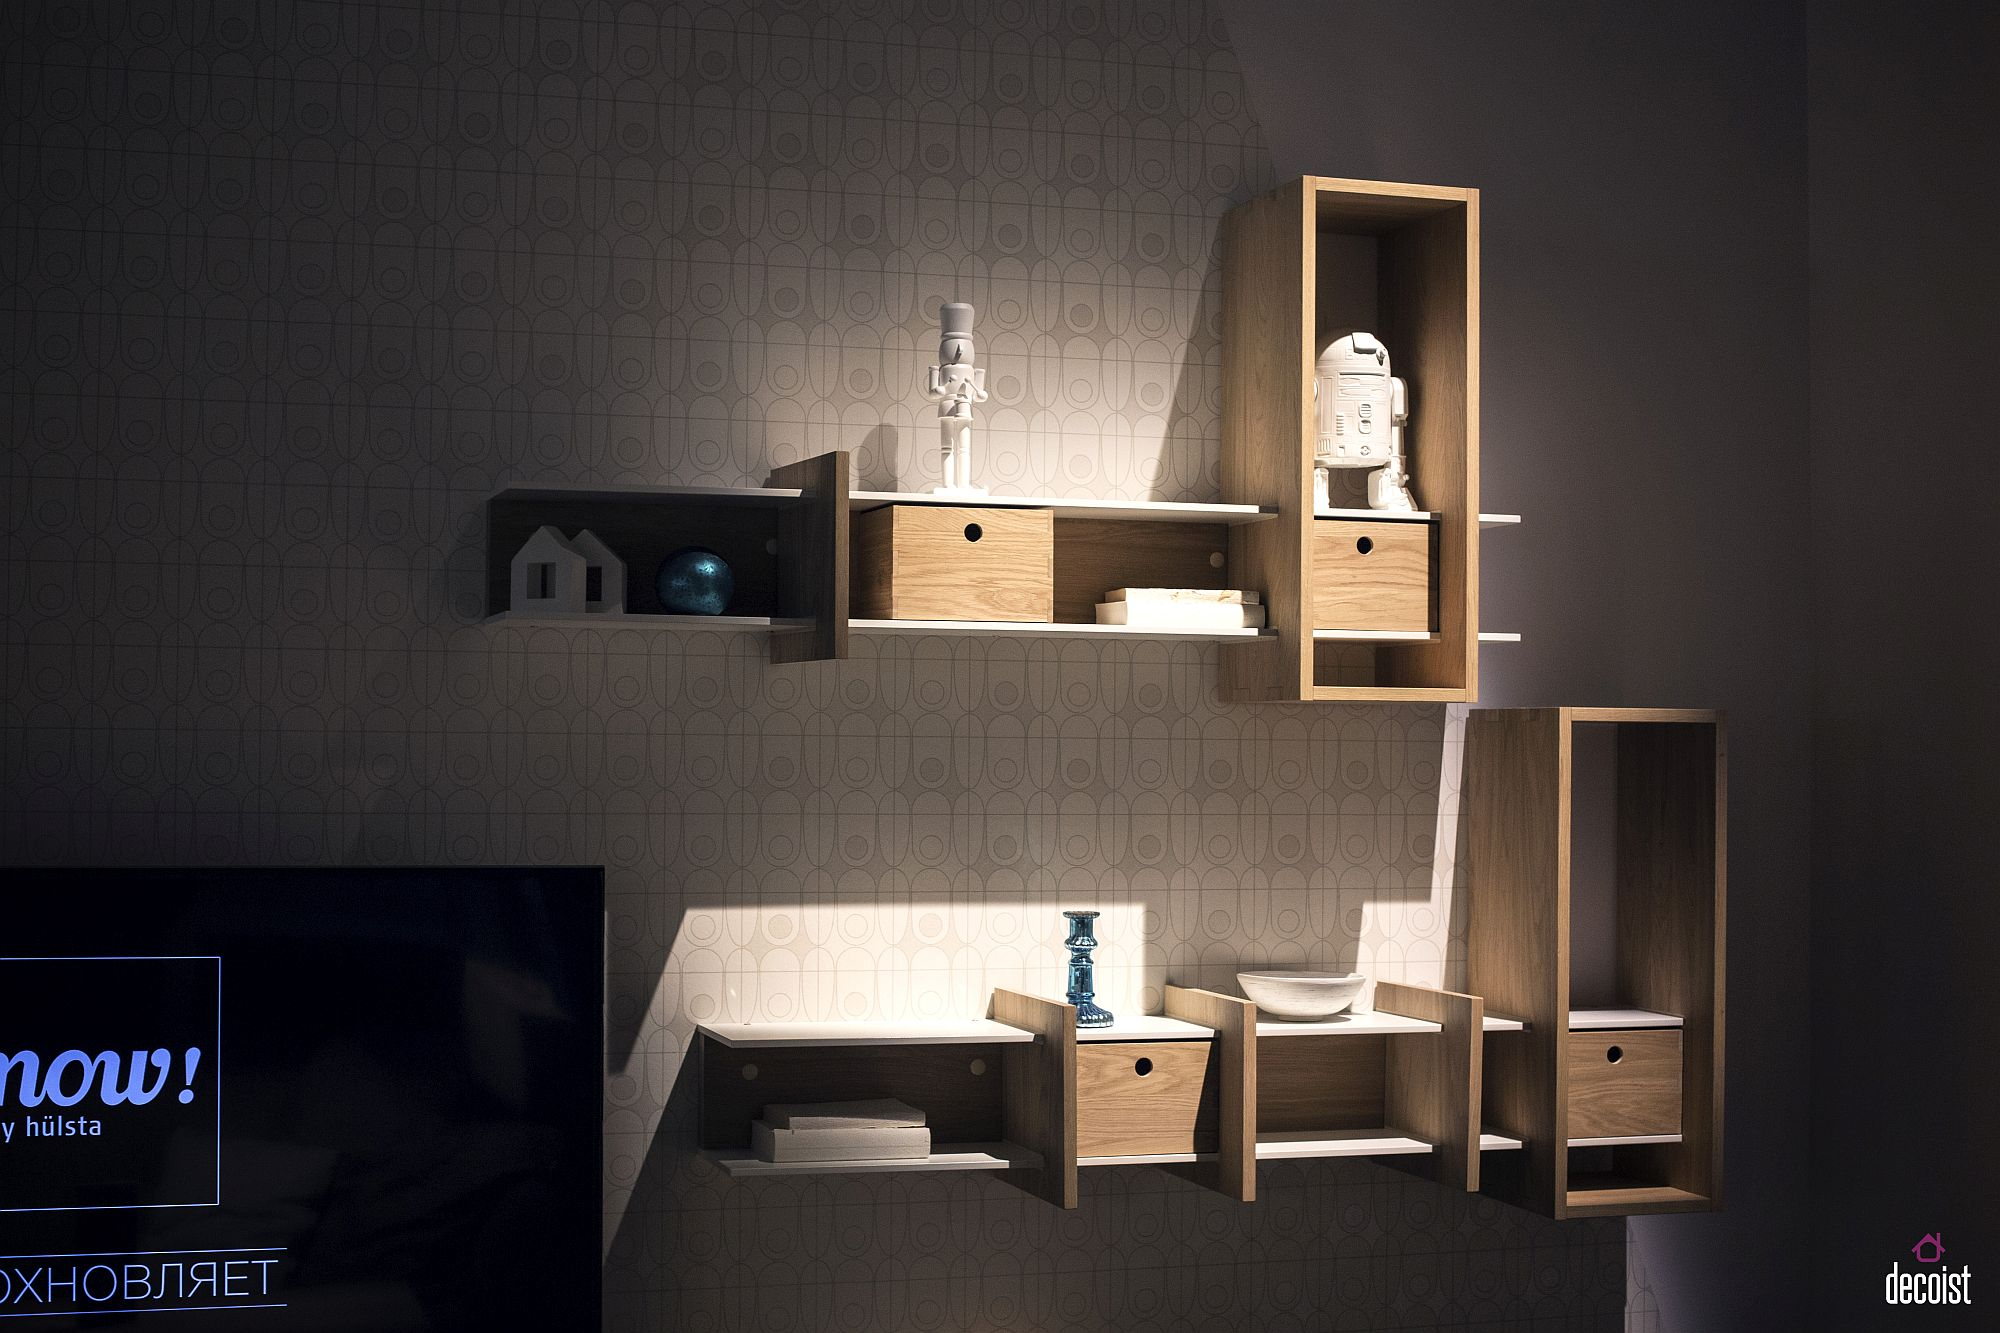 55 wall mounted open shelves offering space savvy modularity view in gallery mondrian wall shelf from cinas view in gallery amipublicfo Image collections